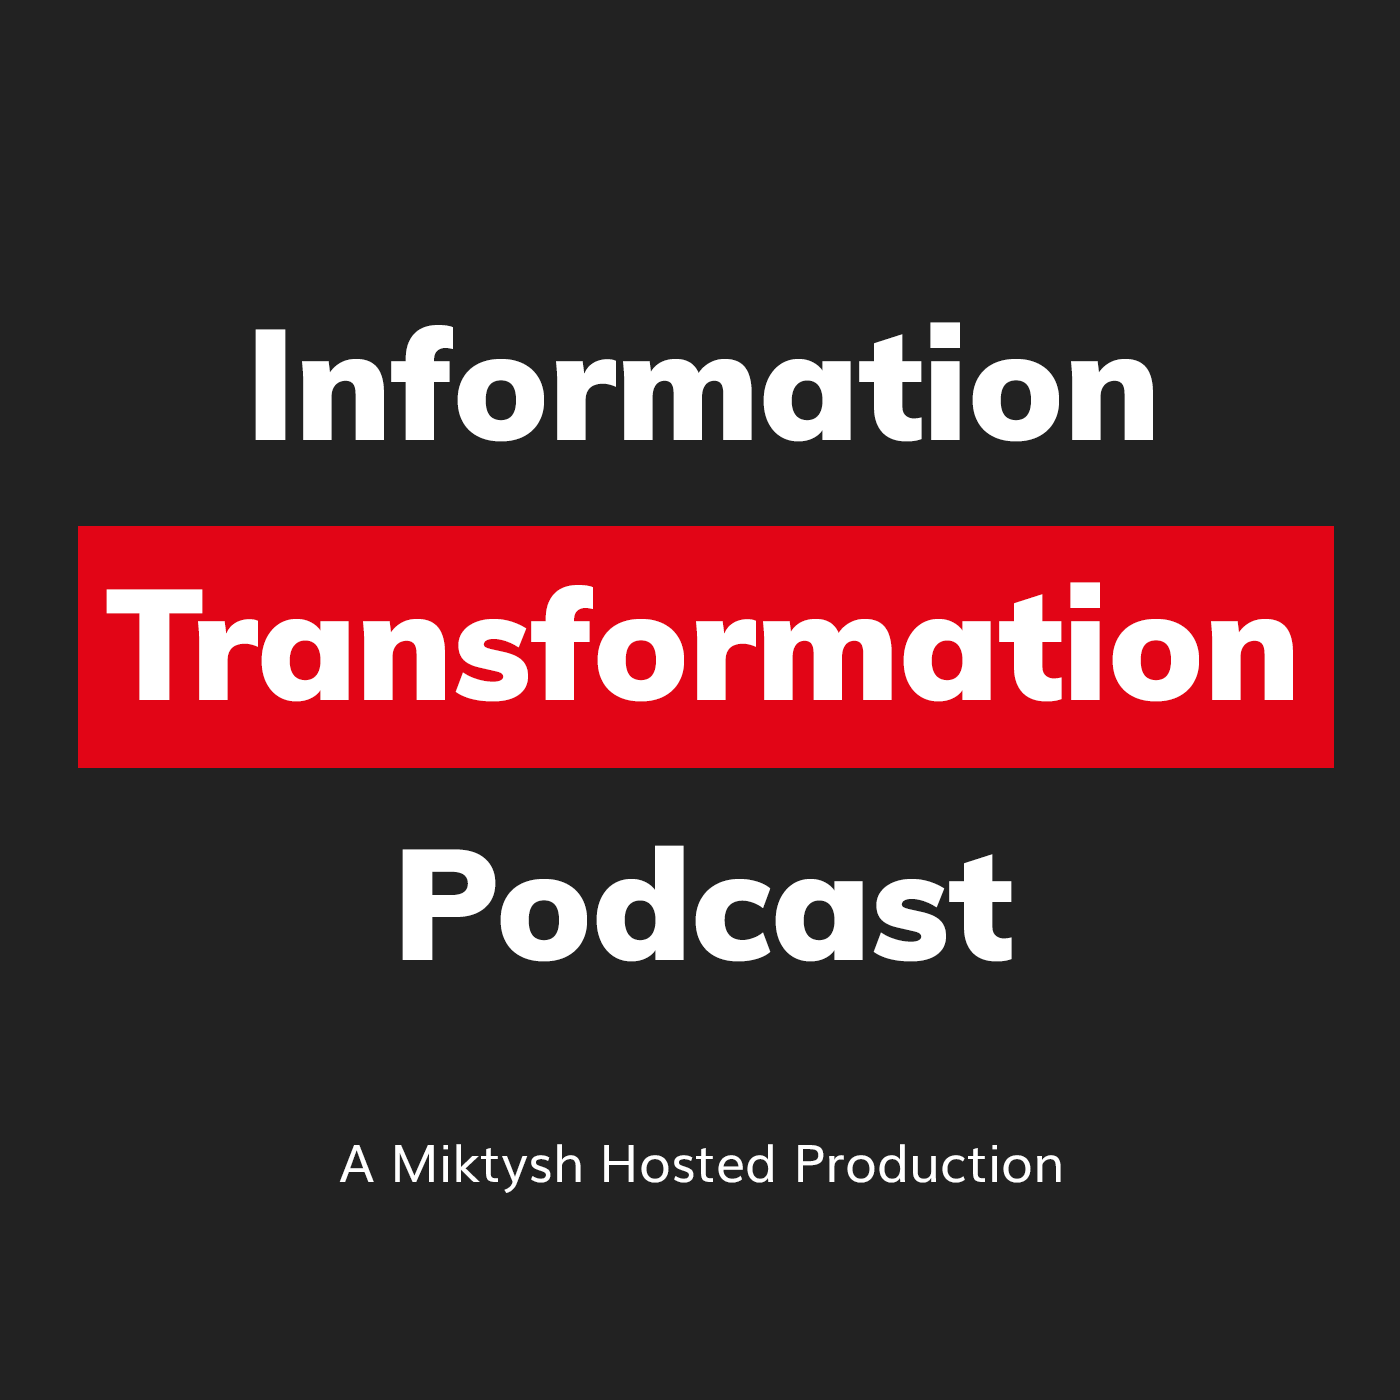 Information Transformation Podcast